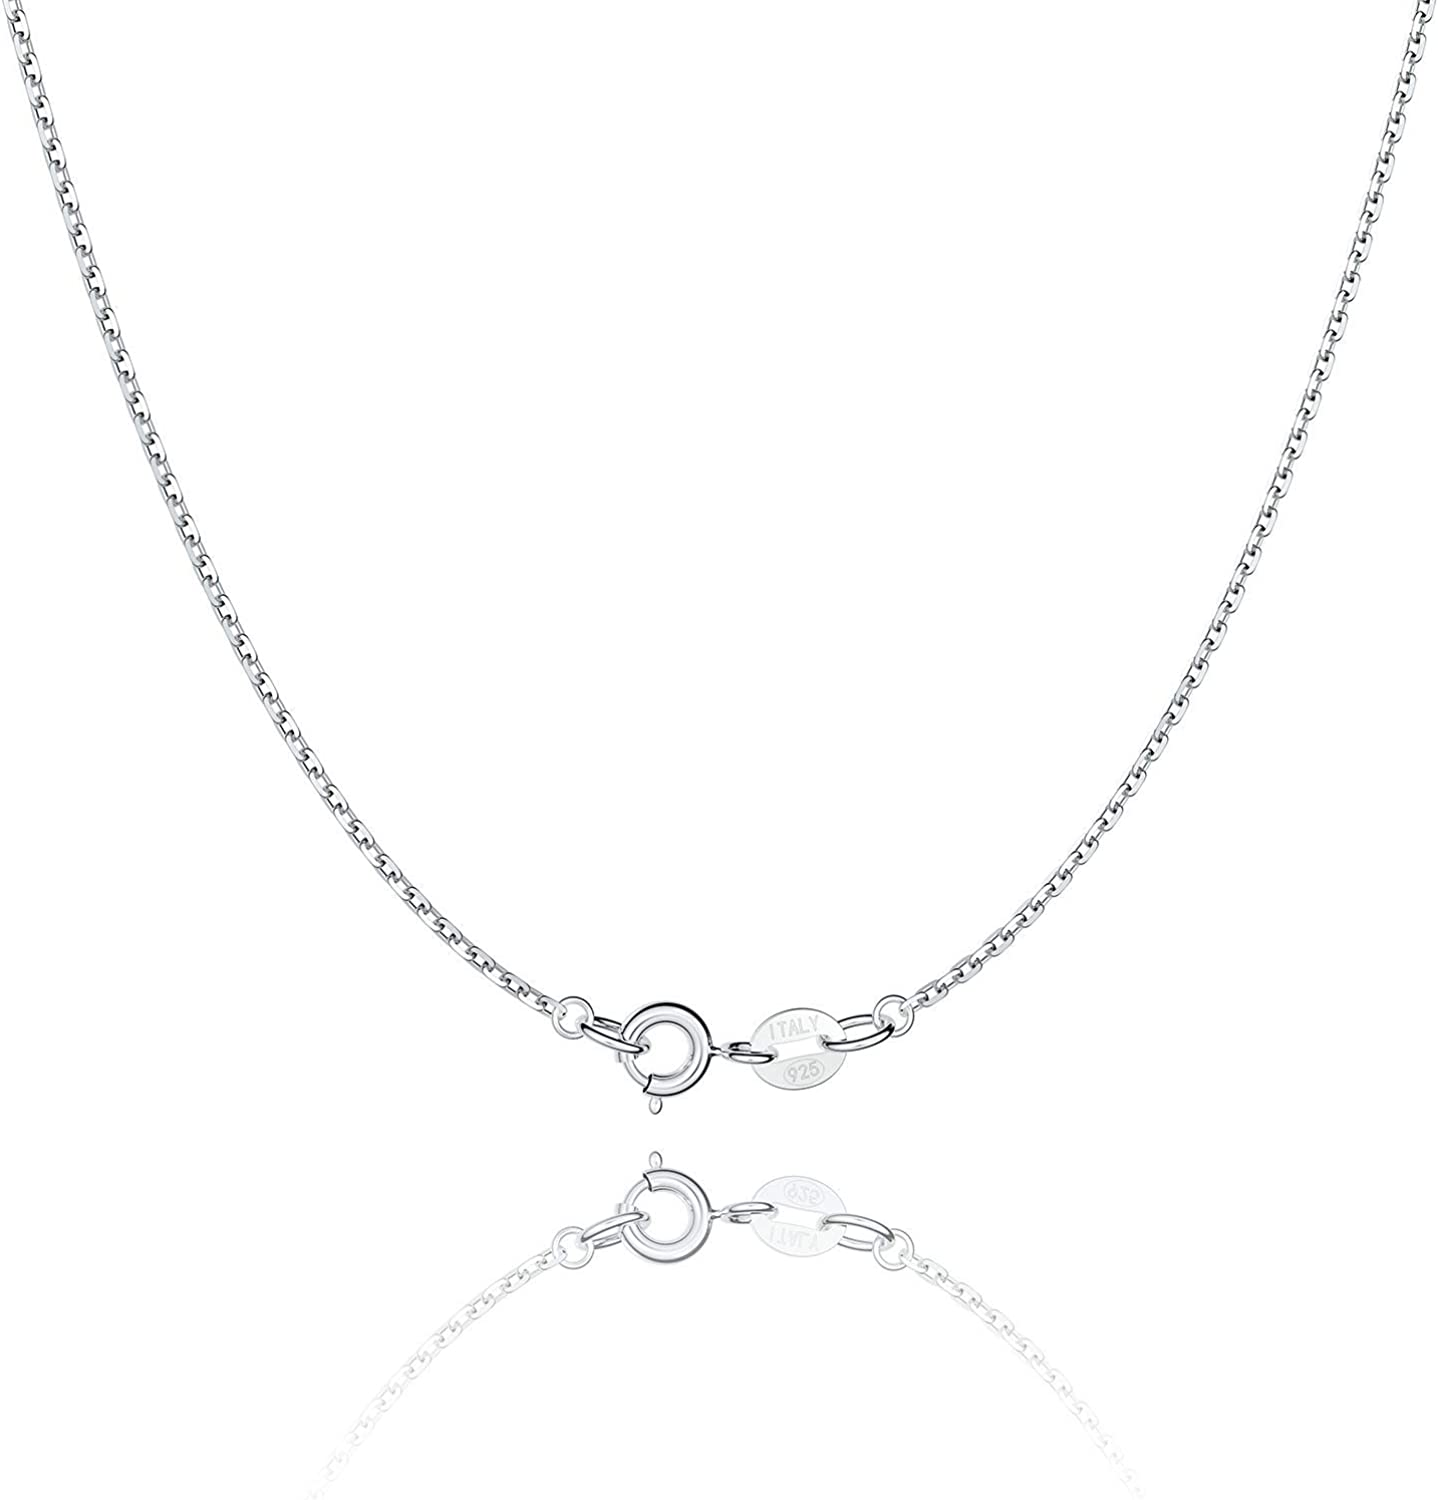 Jewlpire 925 Sterling Silver Chain Necklace Chain for Women Girls 1.1mm Cable Chain Necklace Upgraded Spring-Ring Clasp - Thin & Sturdy - Italian Quality 18 Inch: Jewelry